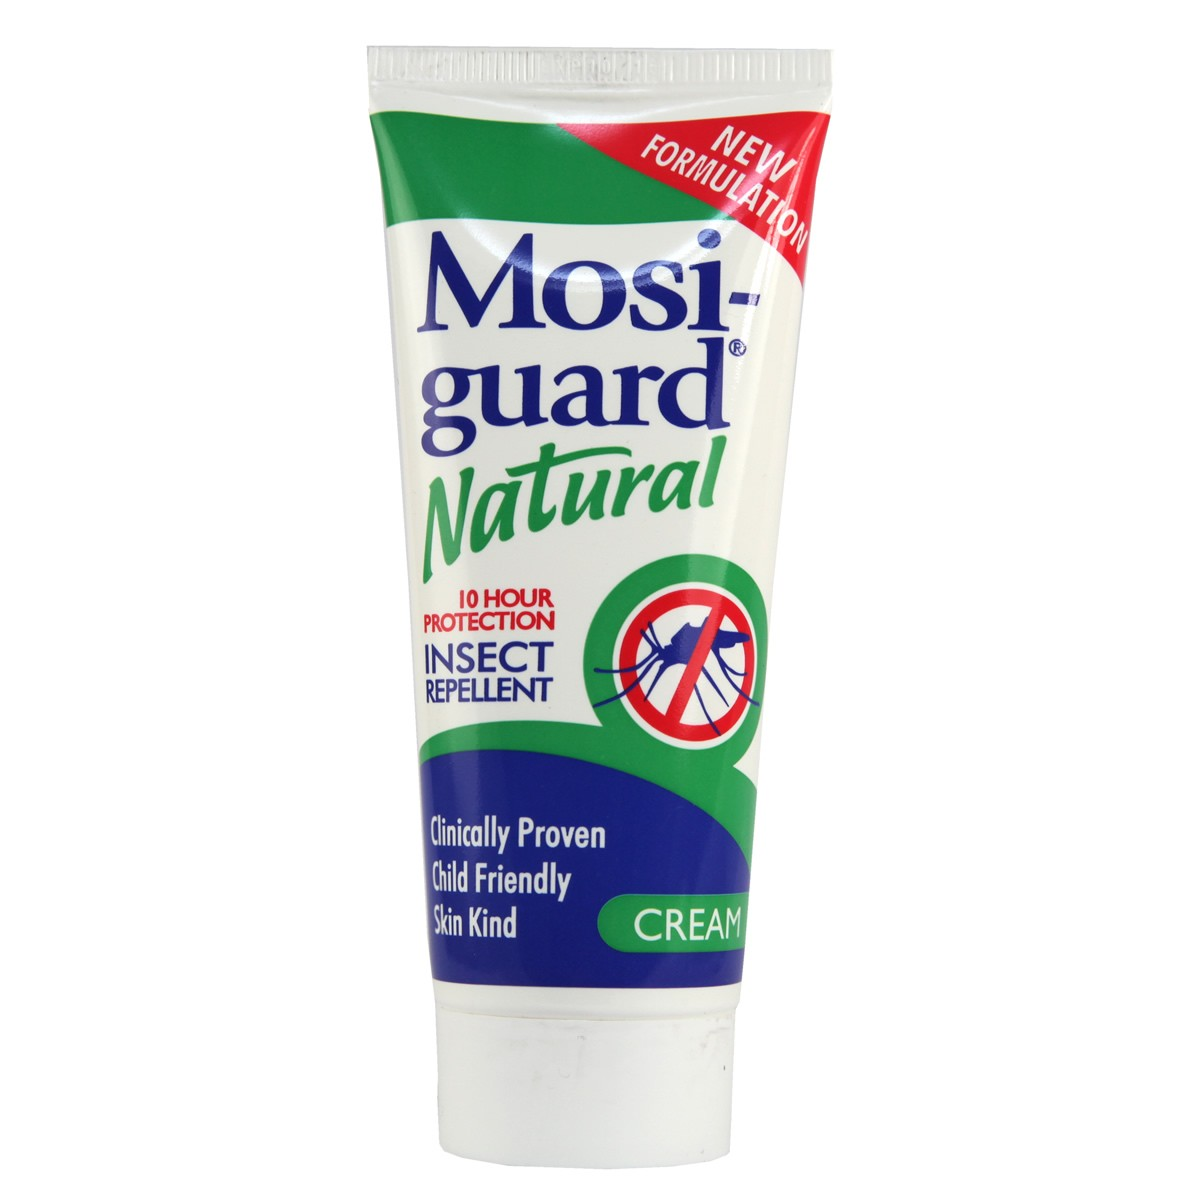 Mosi-guard Natural Insect Repellent Cream